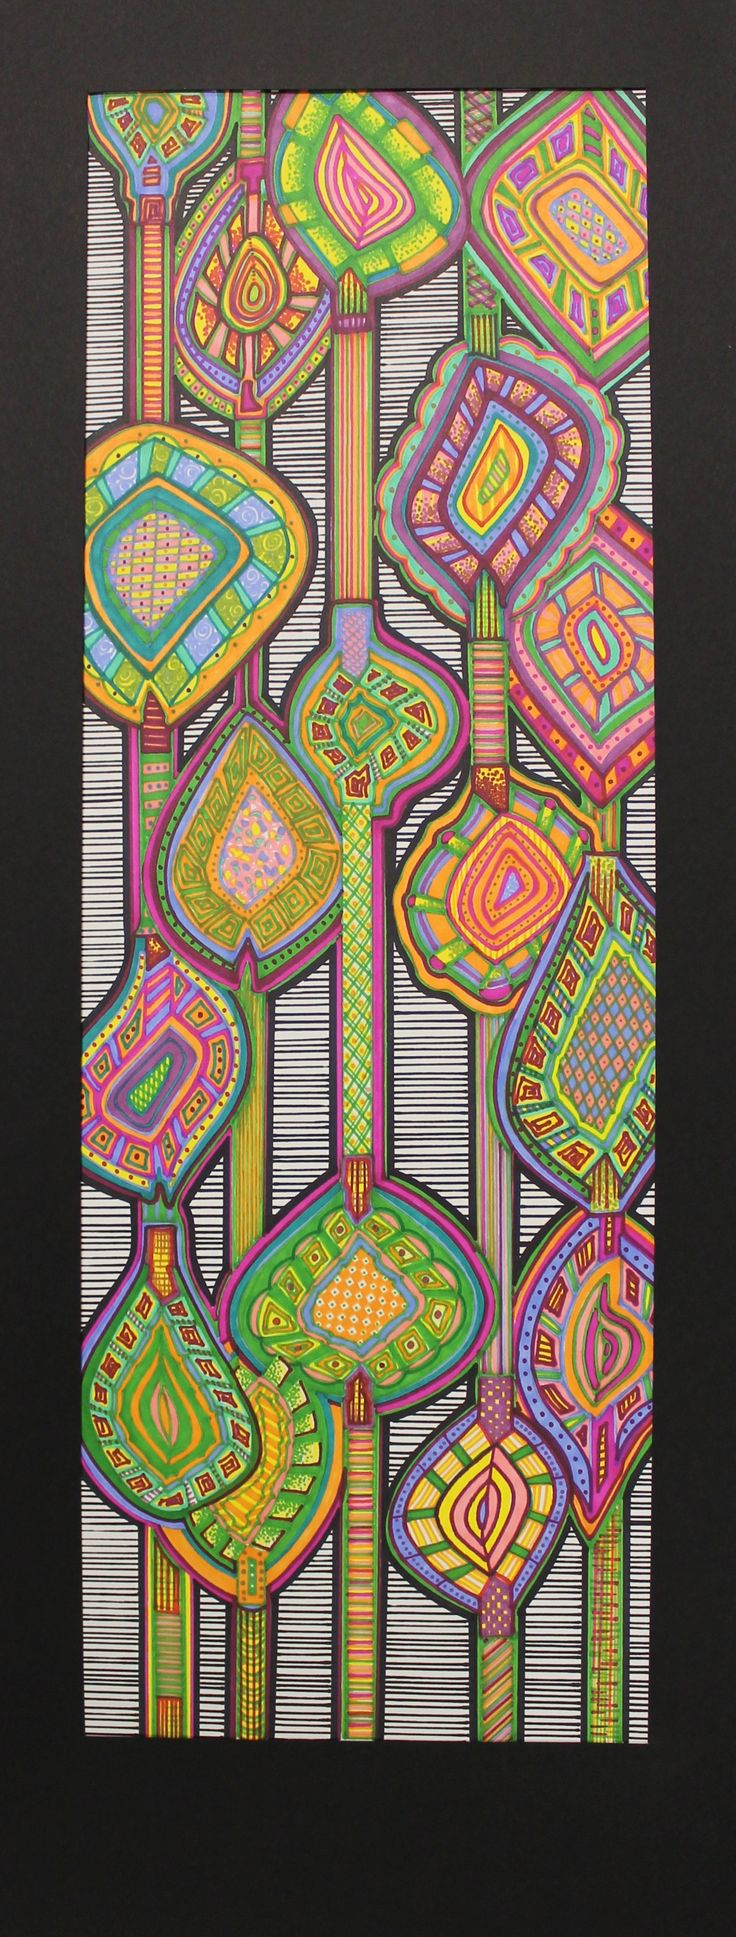 Zentangle Art inspired by vintage wallpaper patterns